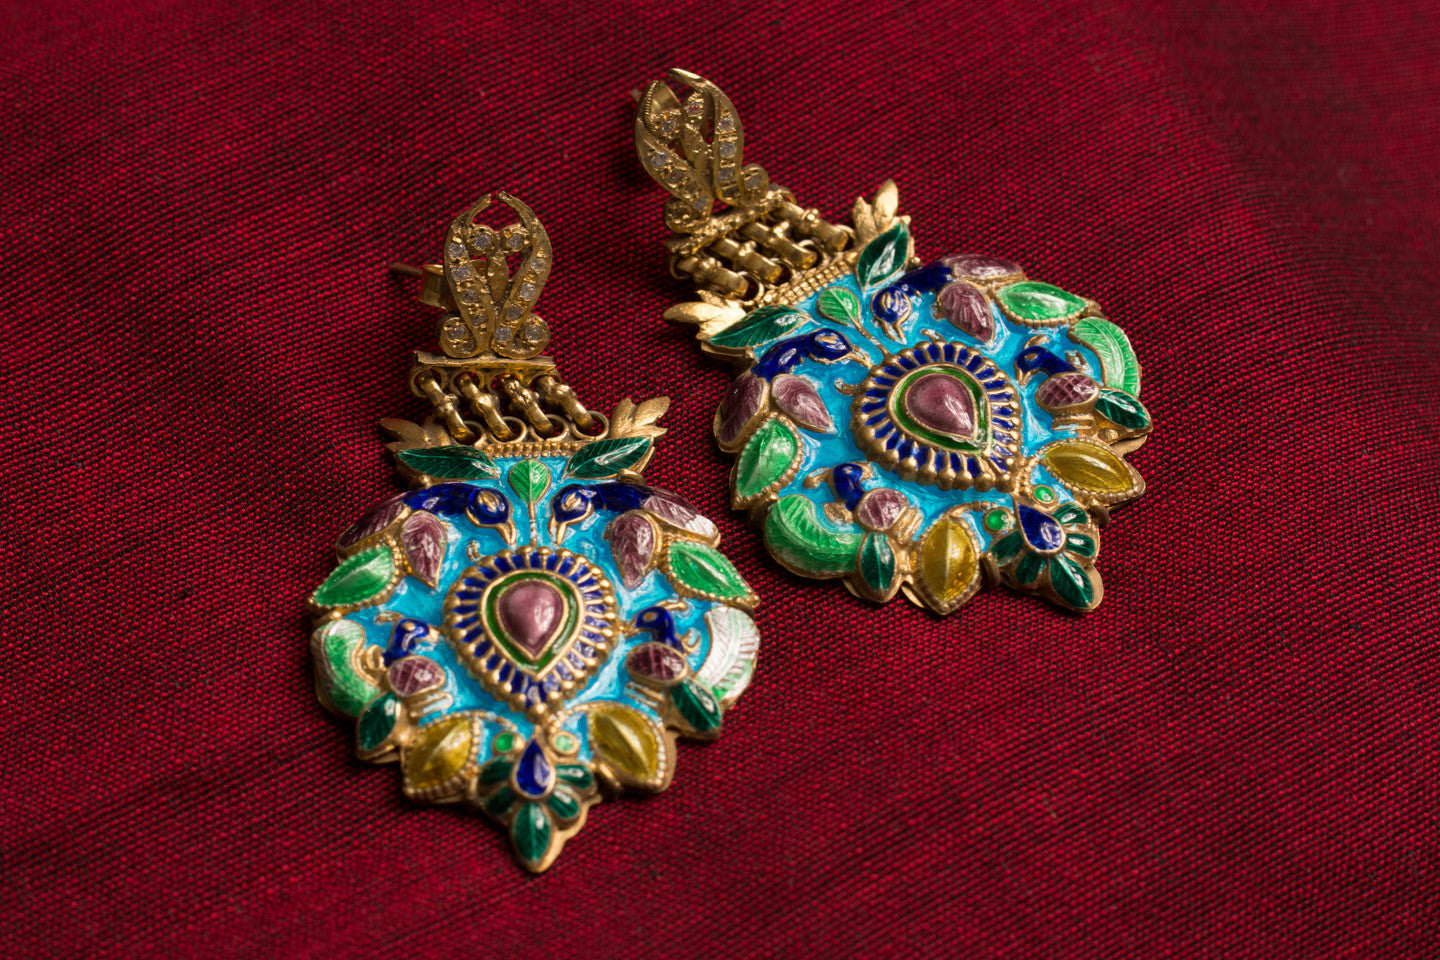 20a473-silver-gold-plated-amrapali-earrings-multi-color-enamel-bird-leaf-raised-design-alternate-view